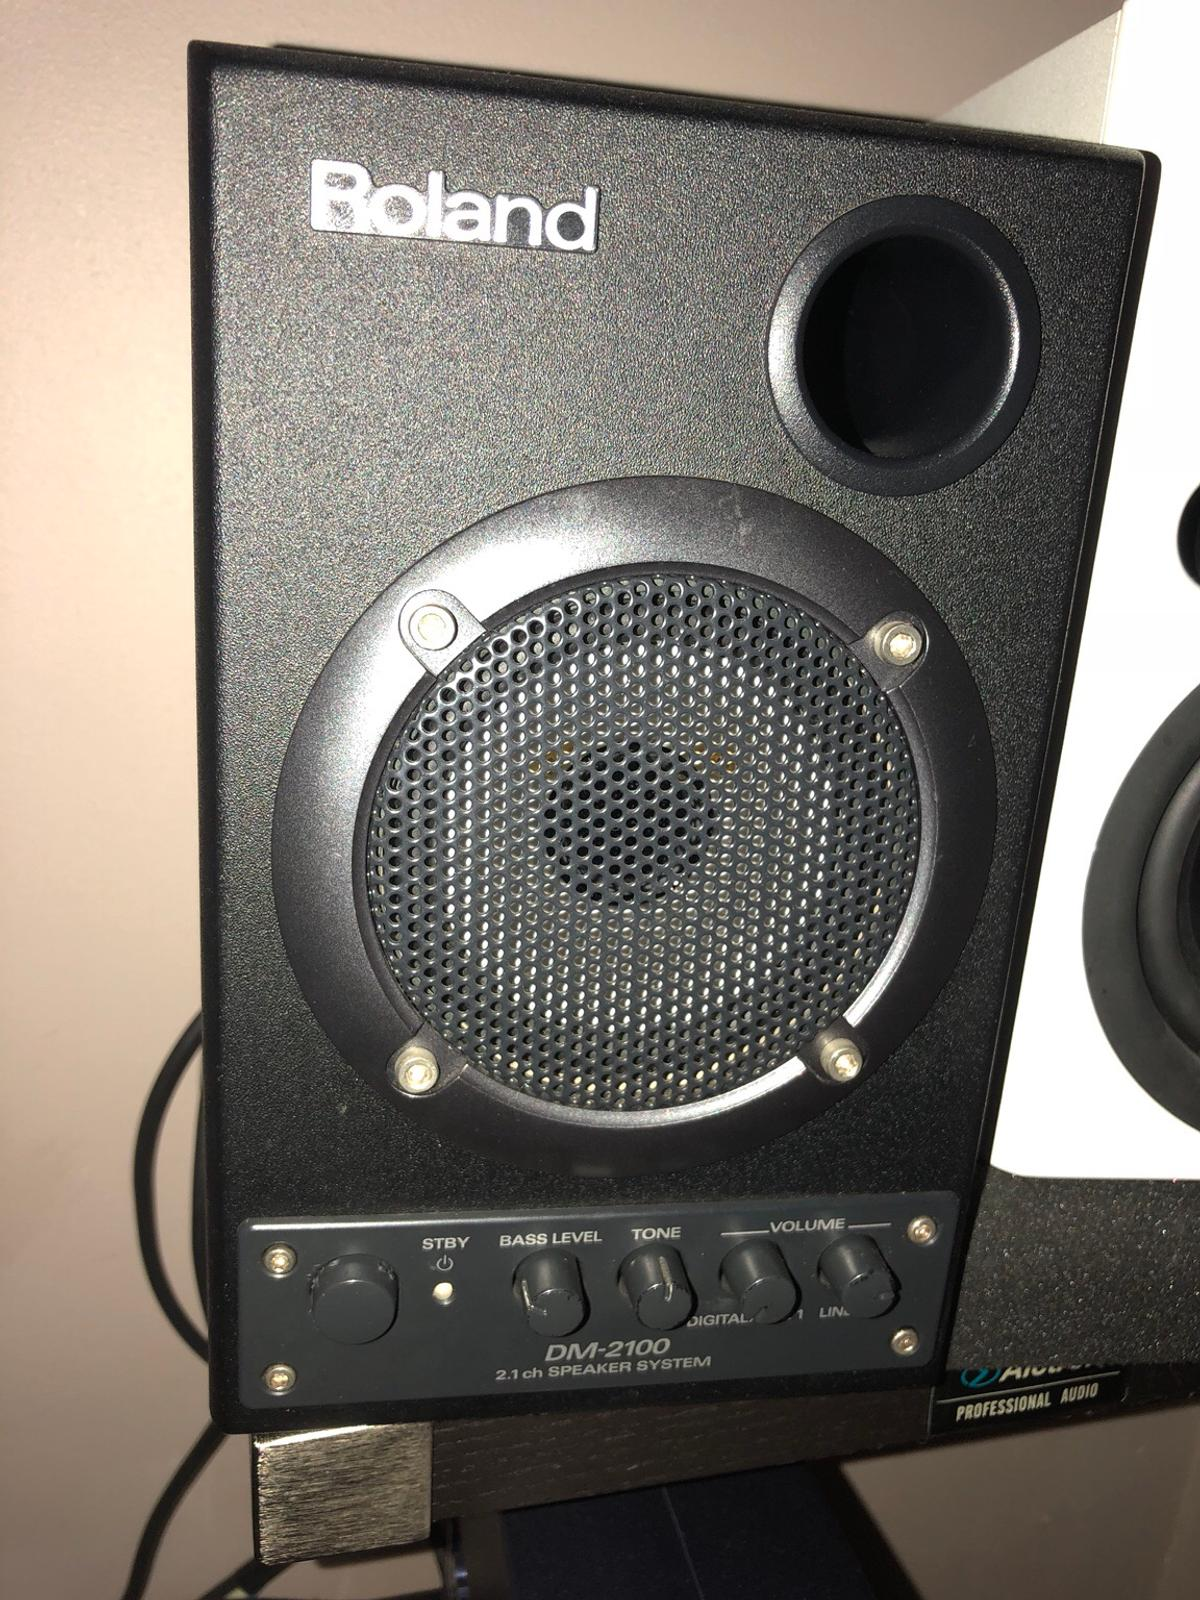 Verrassend Roland DM2100 speakers in DY4 Sandwell for £55.00 for sale - Shpock UW-46